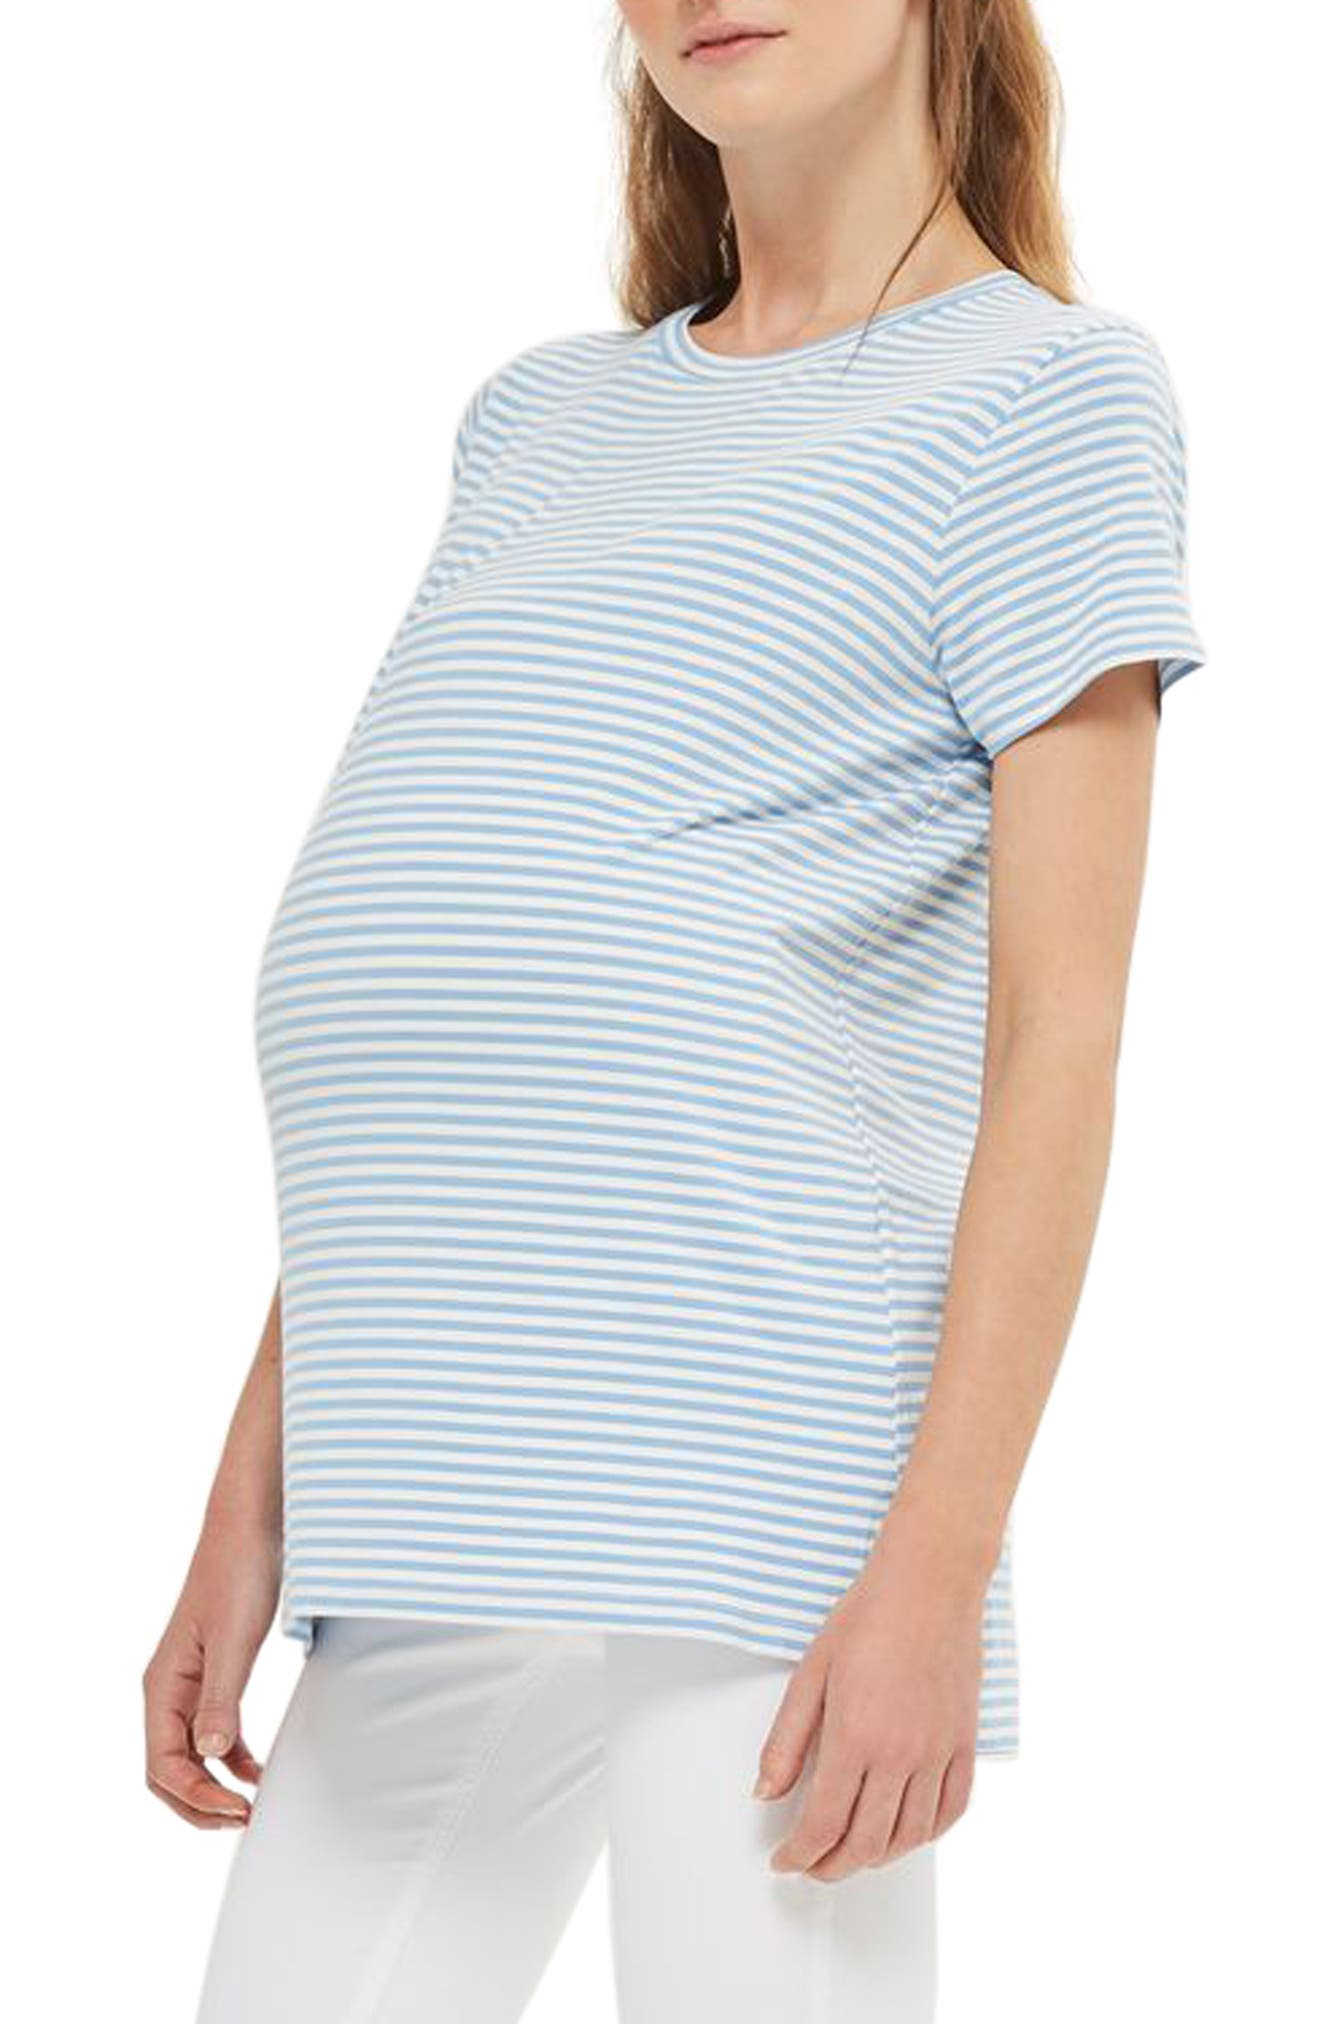 Topshop Stripe Maternity Tee